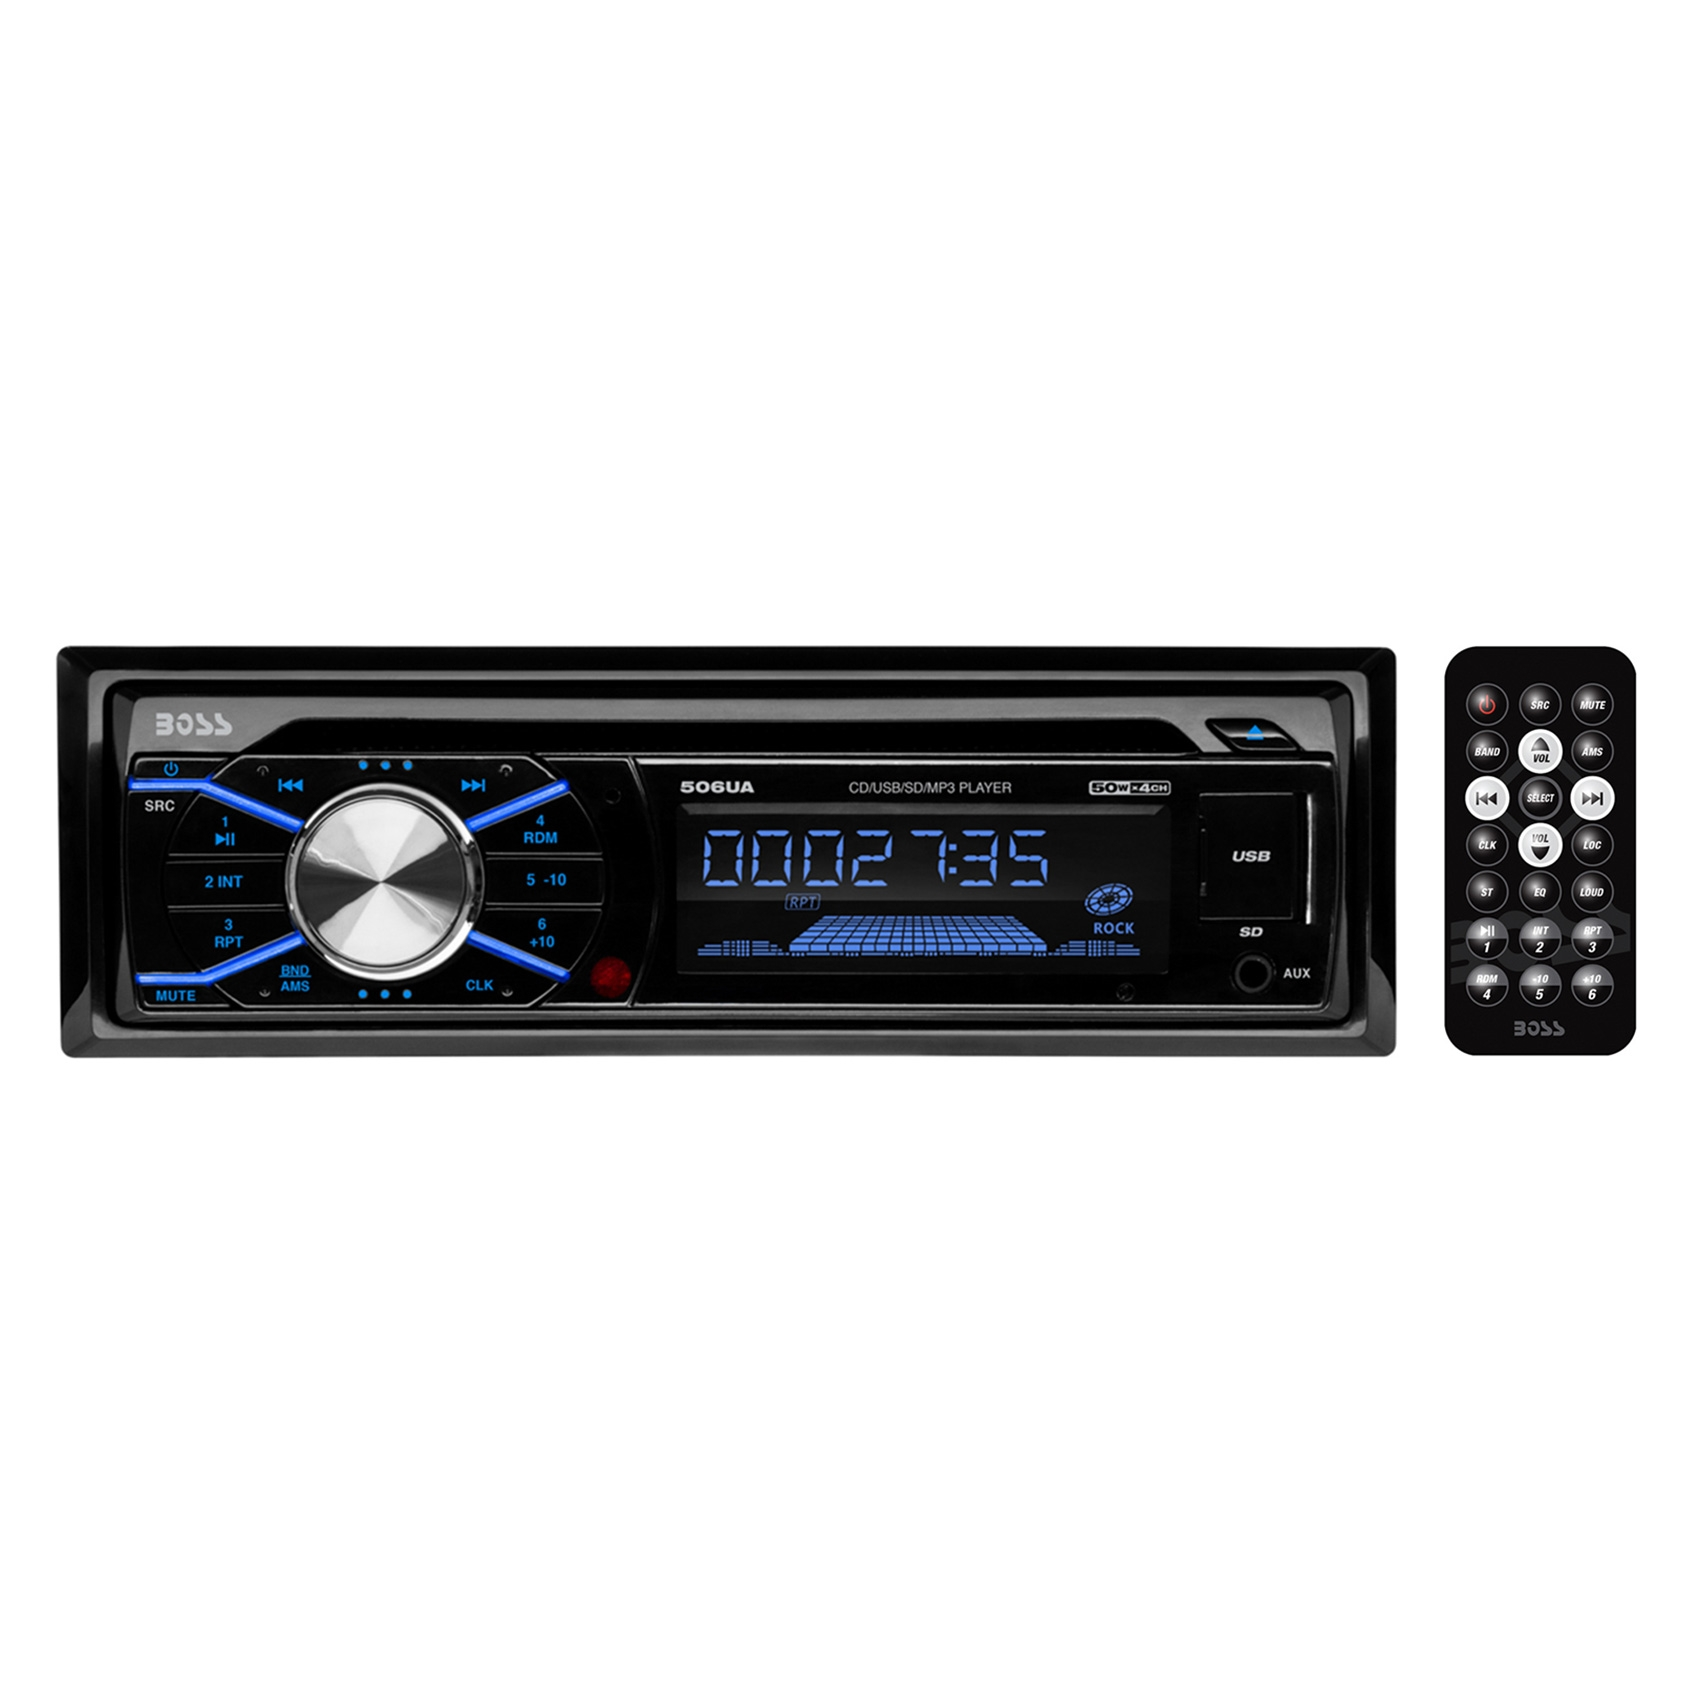 New! Boss 506UA In Dash Car Stereo CD MP3/USB/SD Player